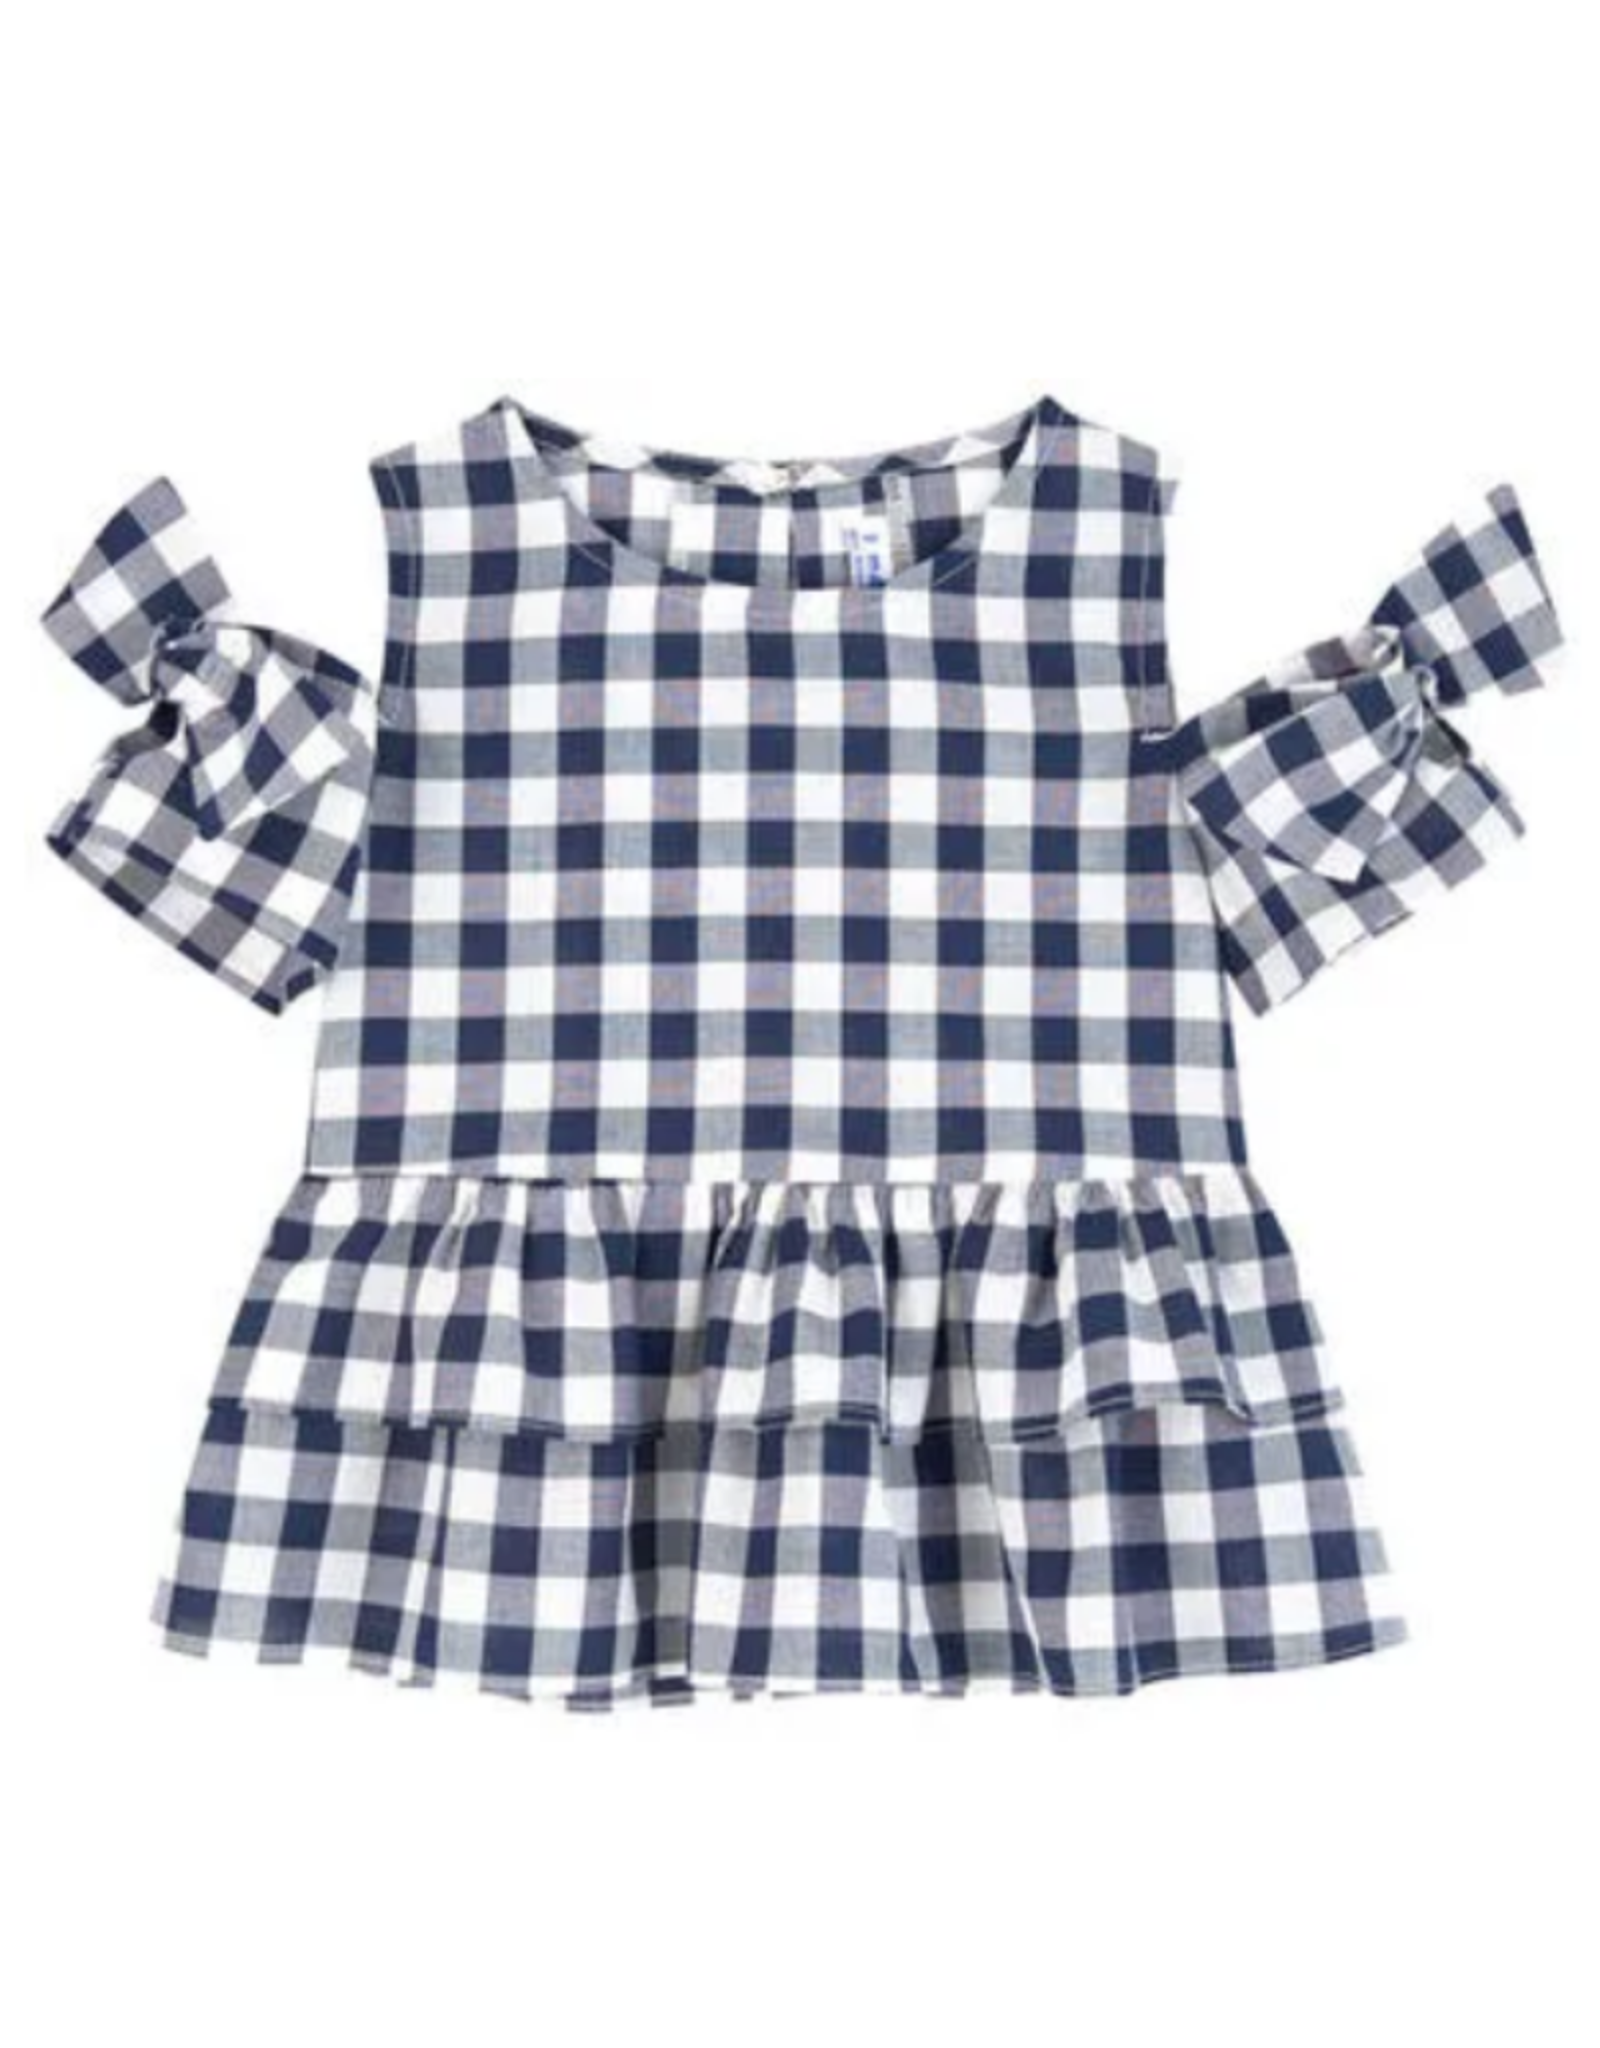 Mayoral Black and White Gingham Top